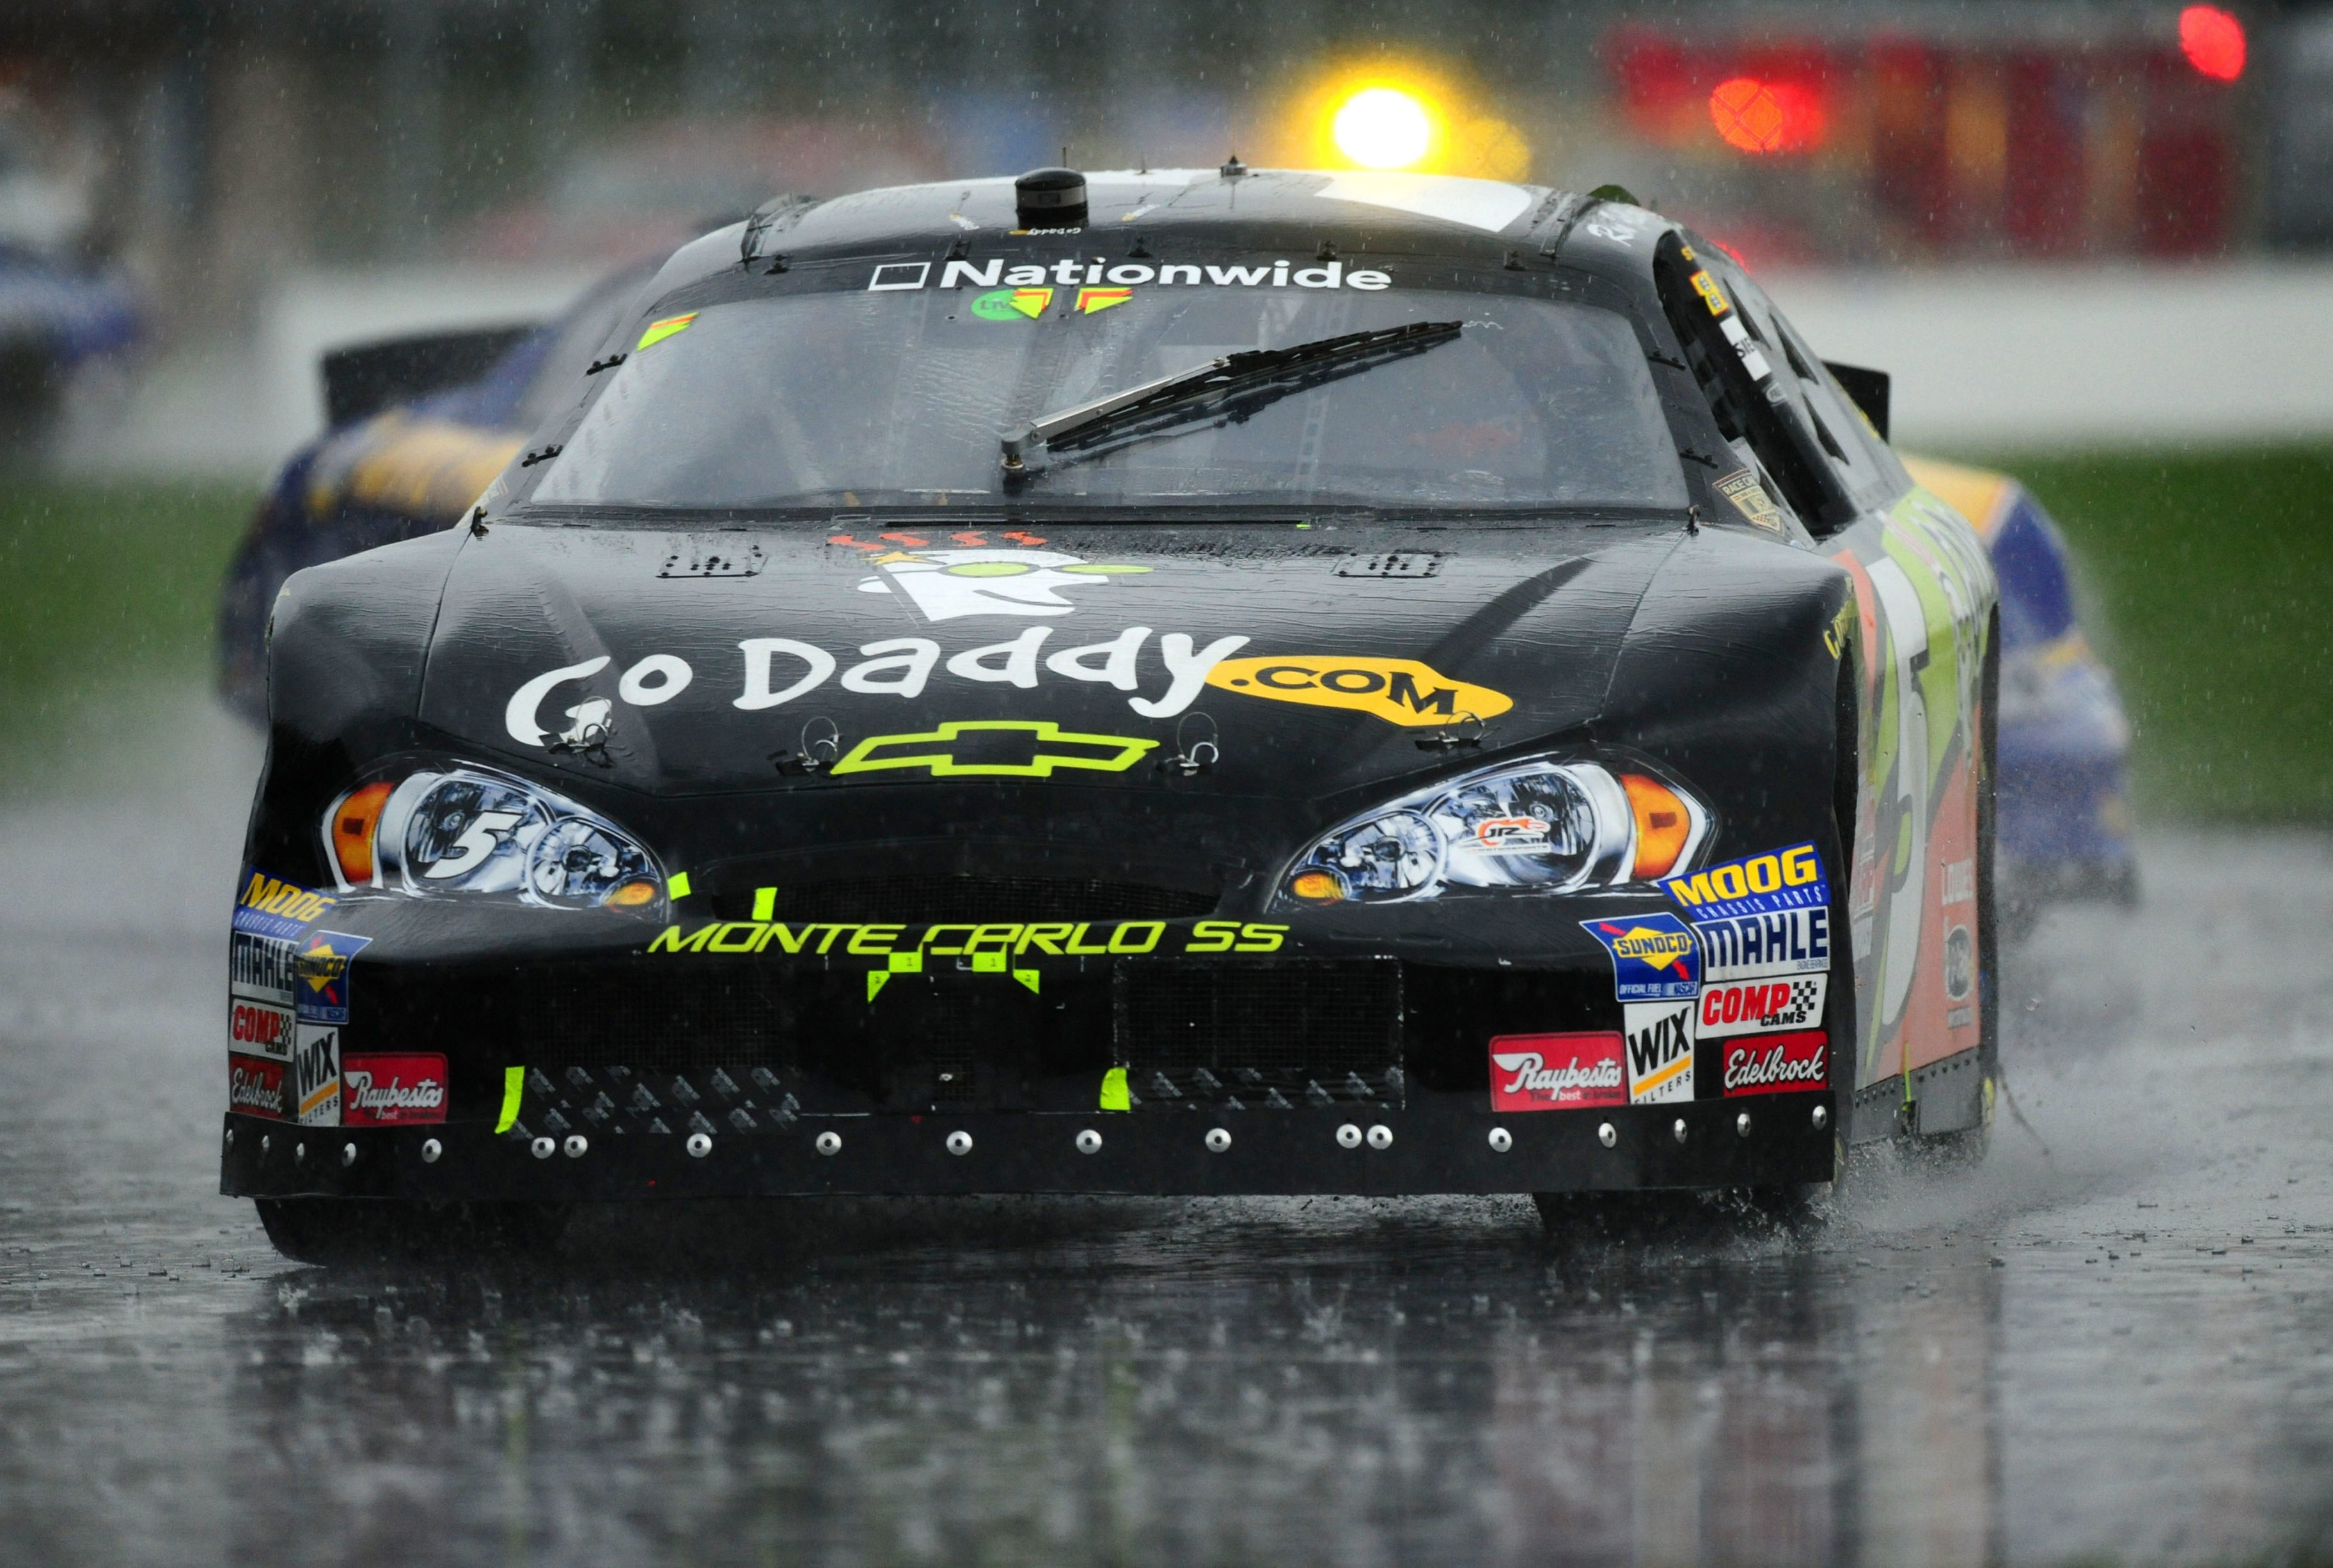 Ron Fellows - NASCAR in the rain